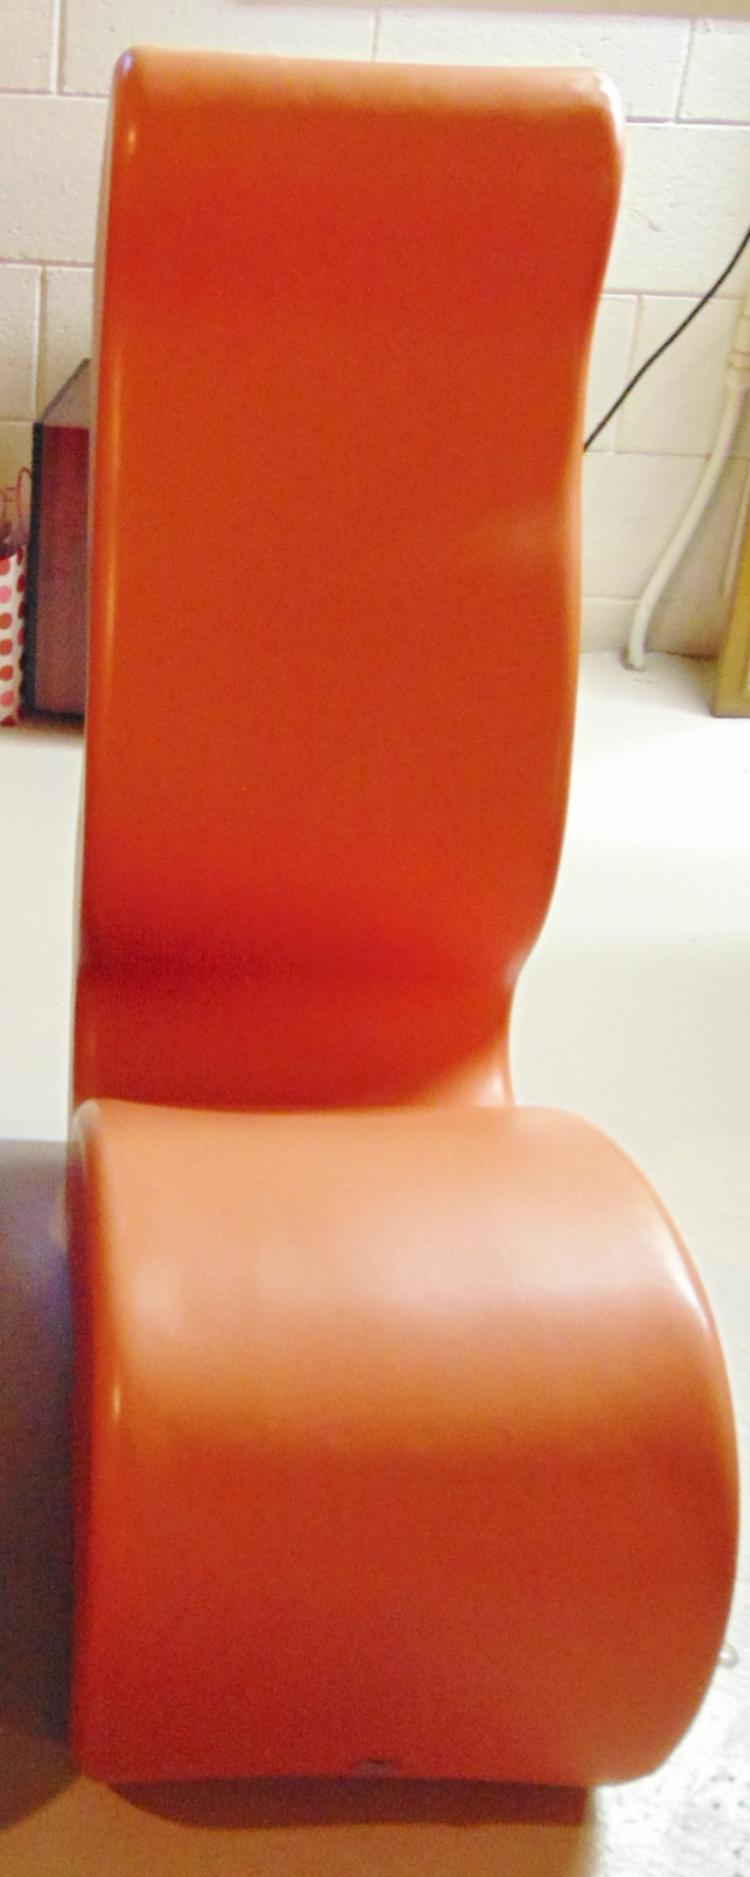 Verner Panton Phantom chairs 1998 by Innovation, signed, orange in color